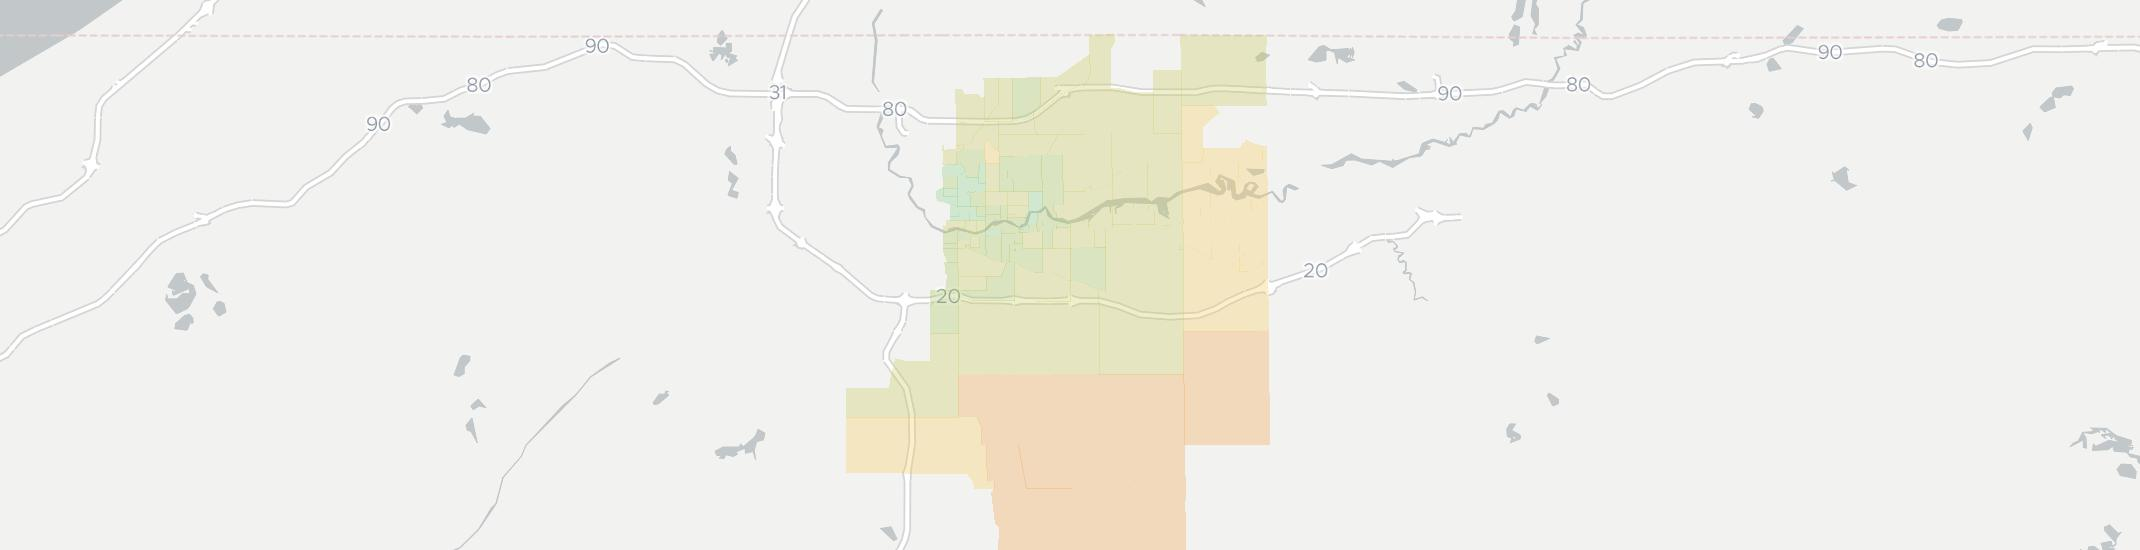 Mishawaka Zip Code Map.Internet Providers In Mishawaka Compare 22 Providers